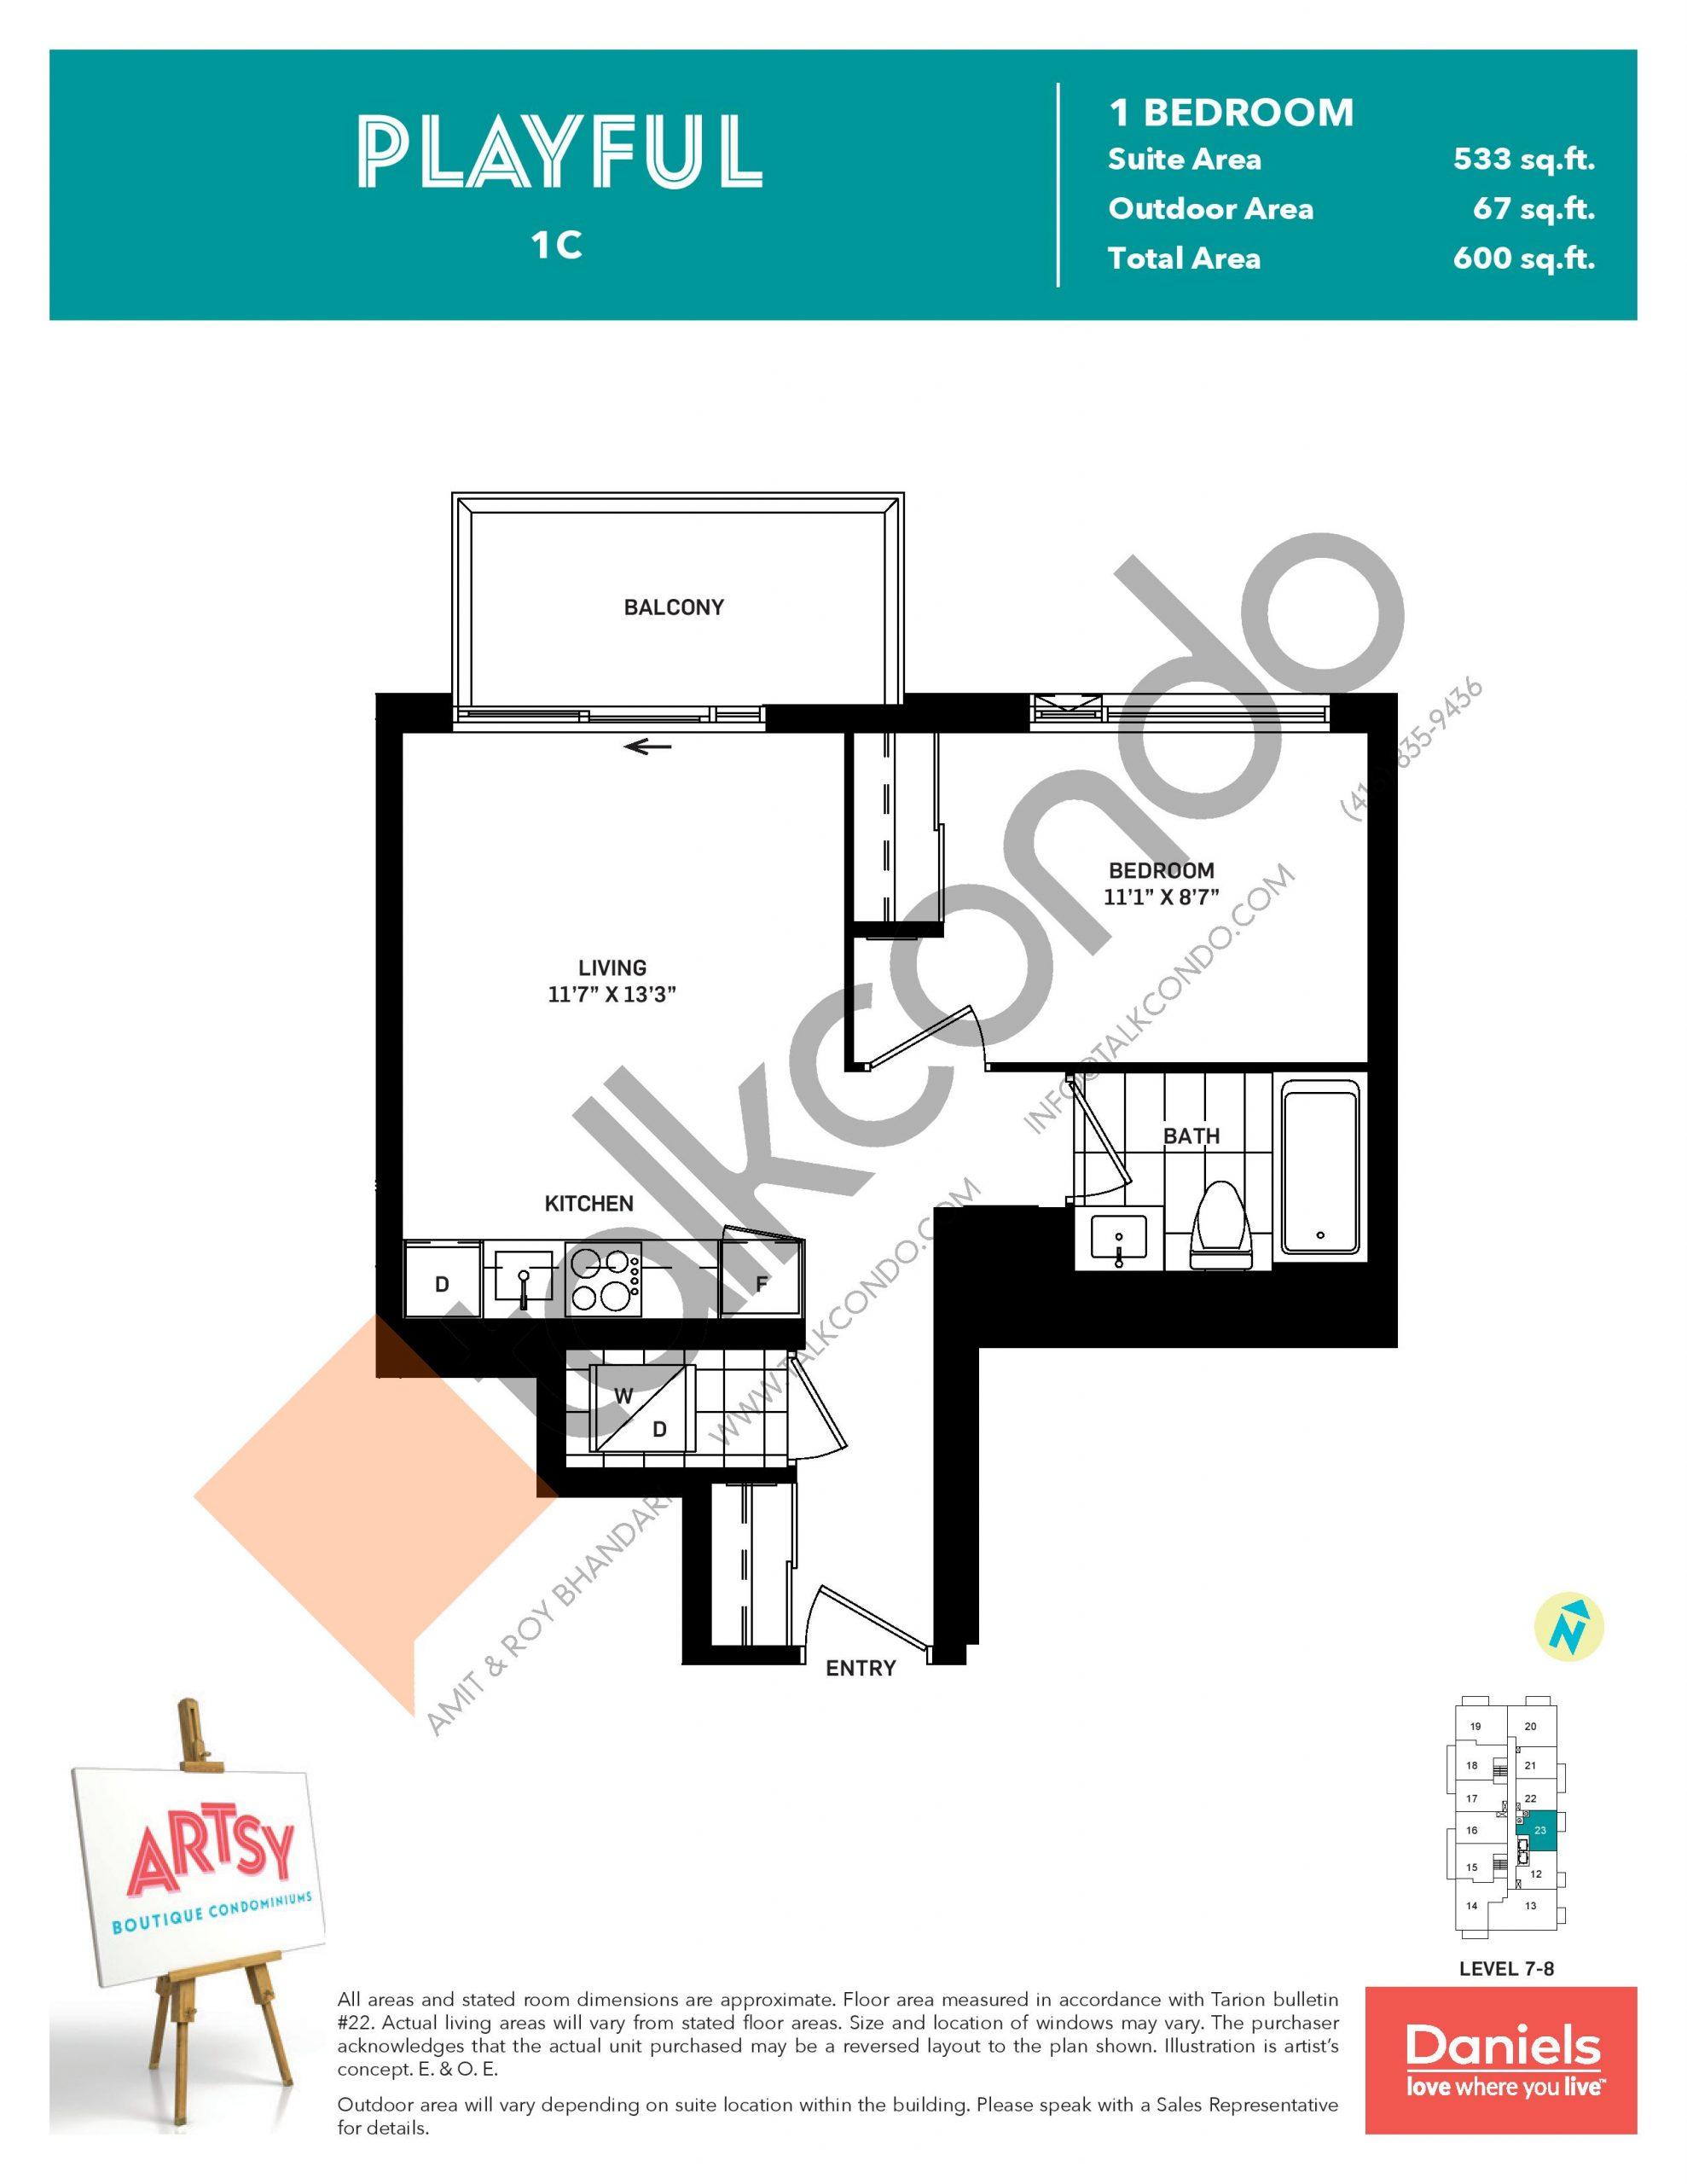 Playful Floor Plan at Artsy Boutique Condos - 533 sq.ft